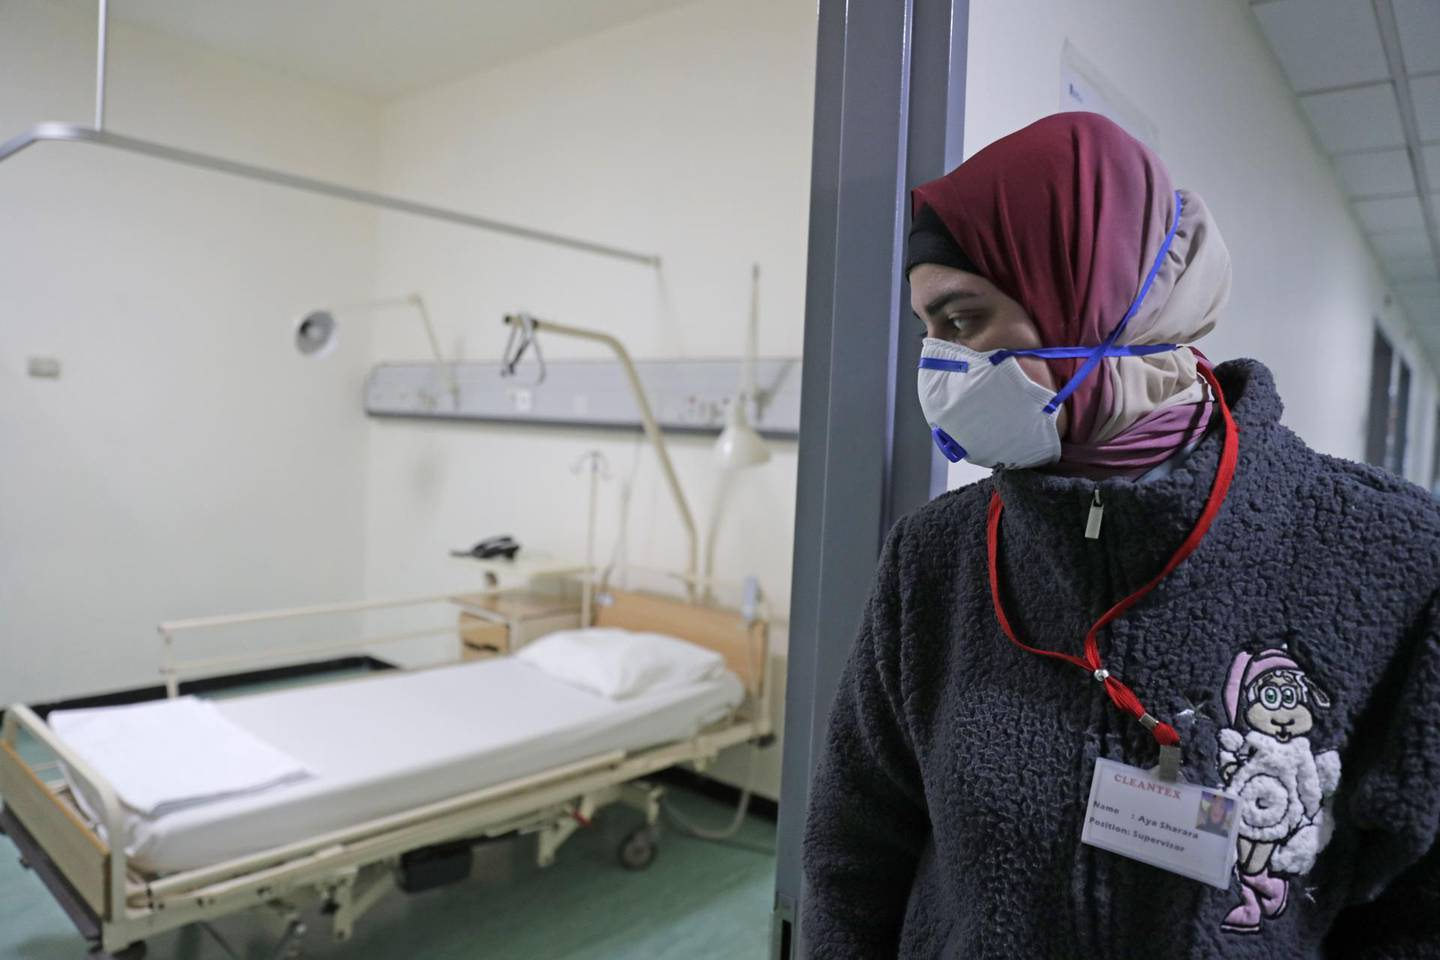 TOPSHOT - A Lebanese employee wearing a protective mask looks at a bed in a ward where the first case of  coronavirus in the country is being treated, at the Rafik Hariri University Hospital in the southern outskirts of the capital Beirut, on February 22, 2020. Lebanon confirmed on February 21, the first case of the novel coronavirus, found in a 45-year-old Lebanese woman who had travelled from the holy city of Qom in Iran, while two other cases were being investigated. / AFP / ANWAR AMRO